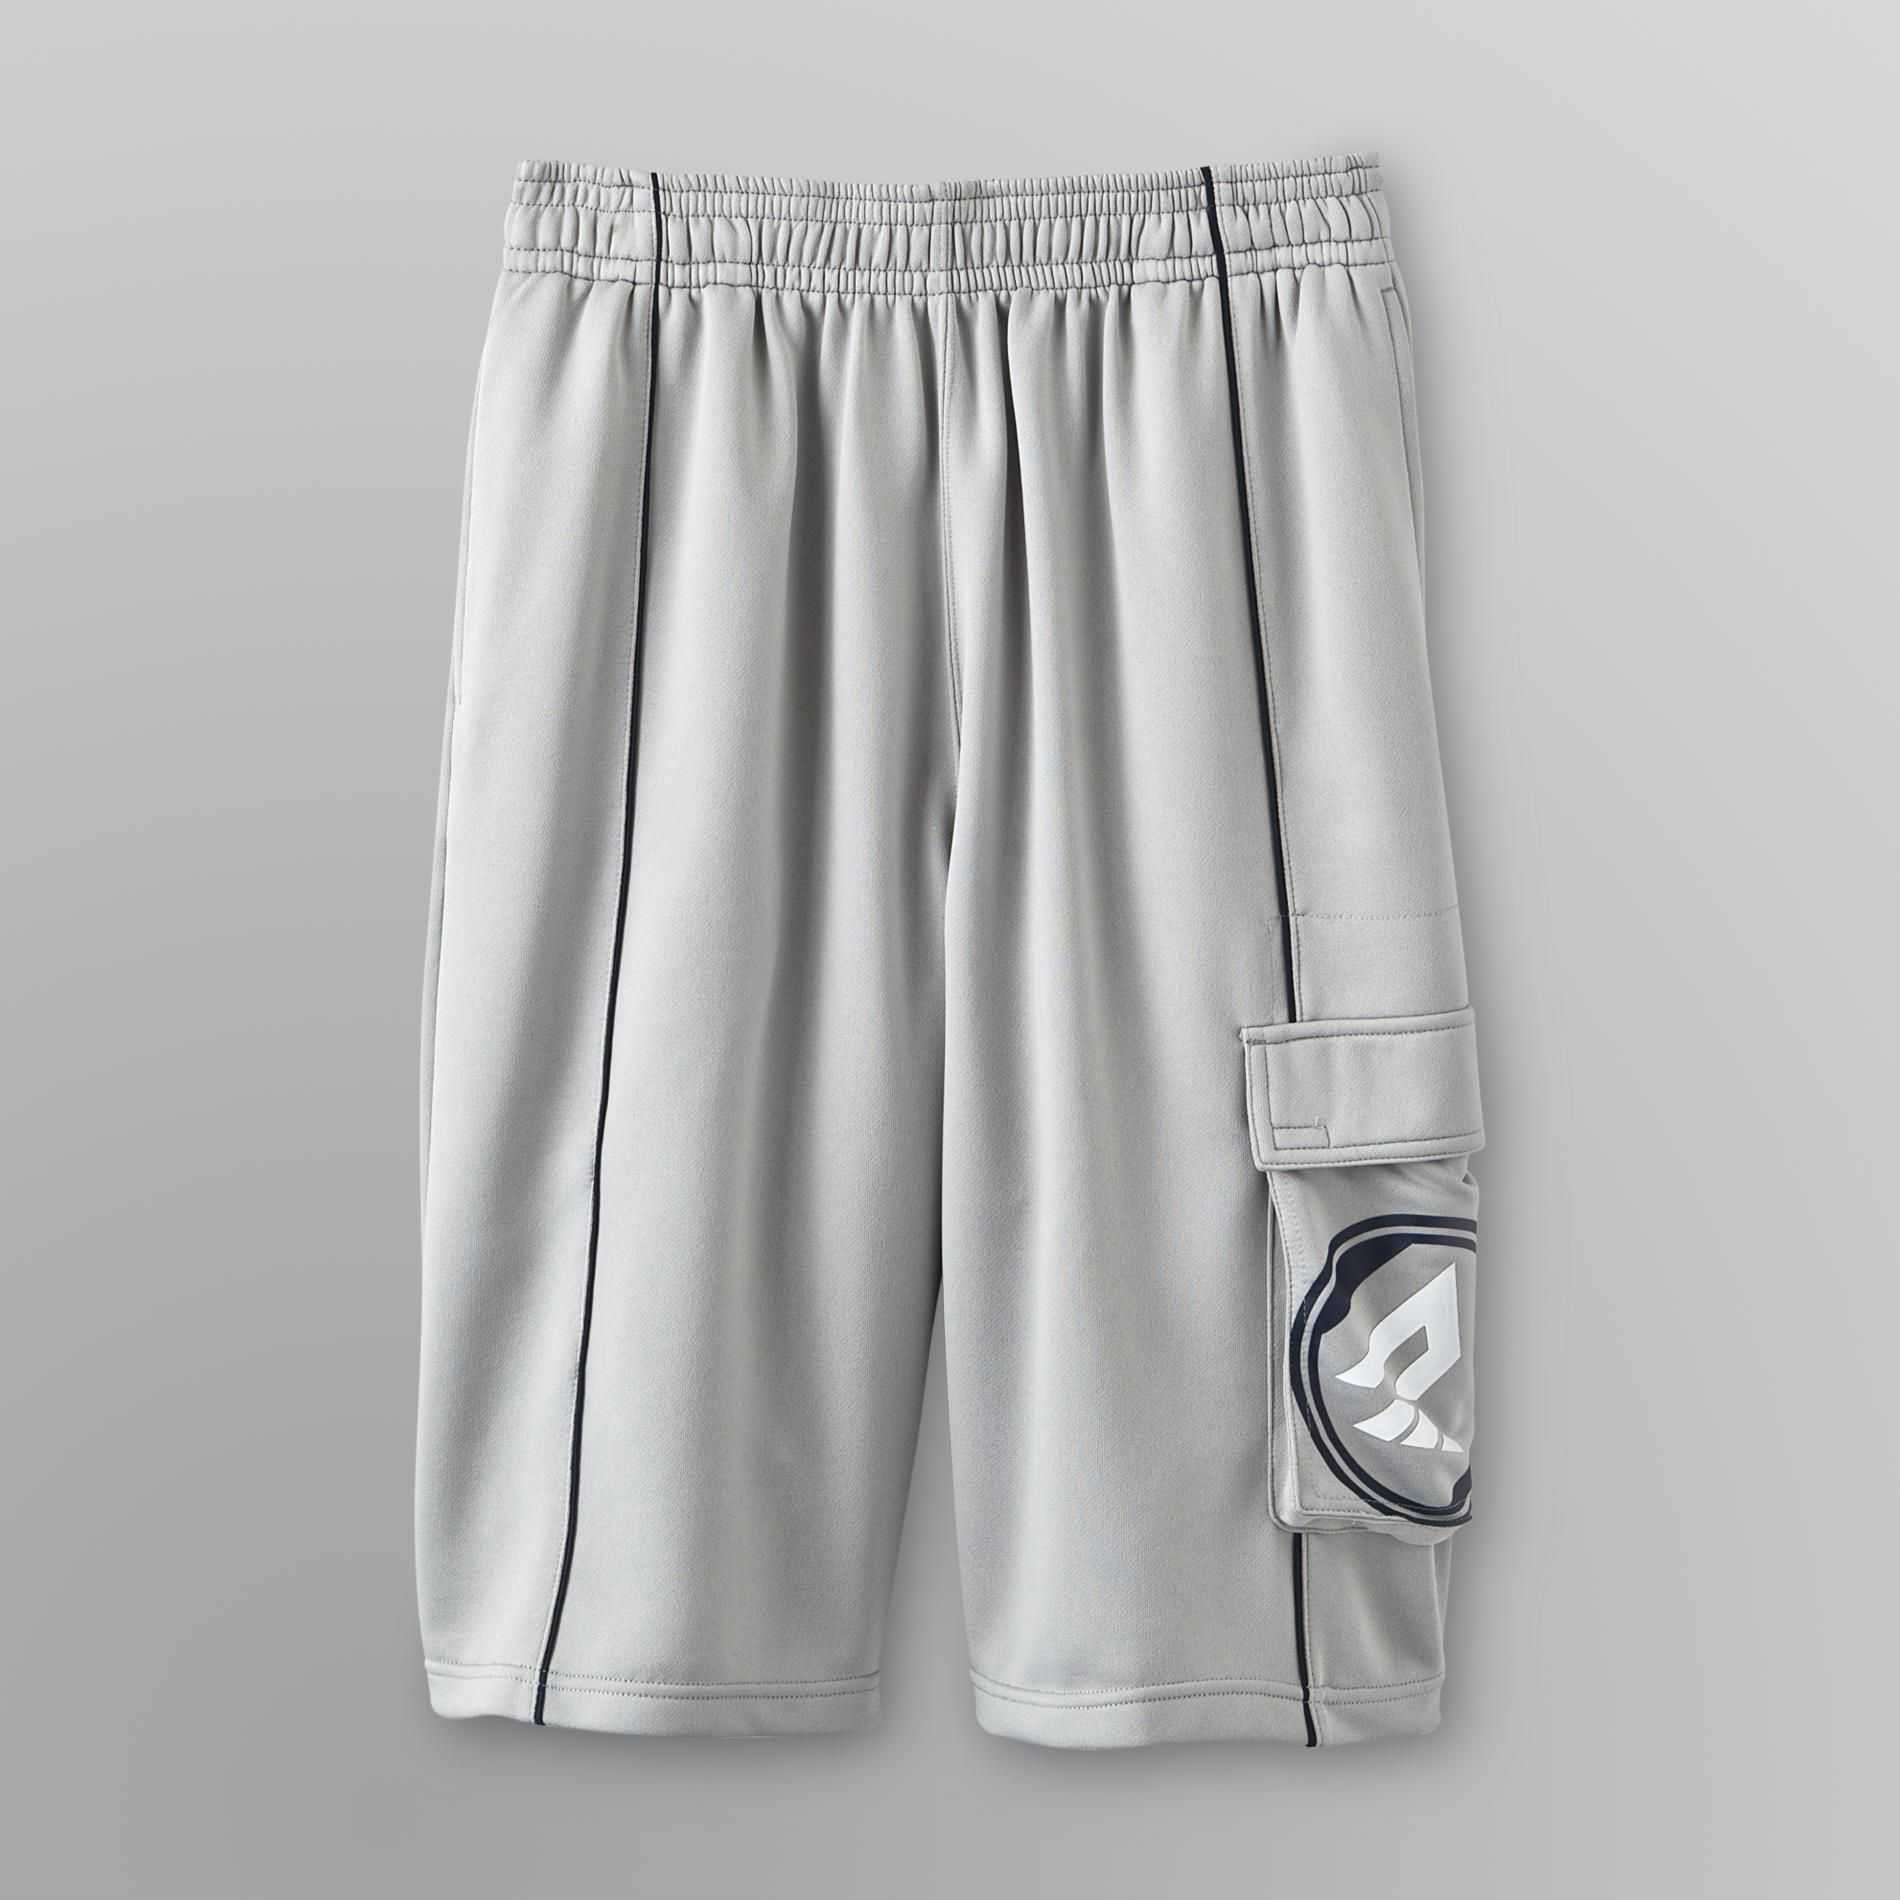 Protege Men's Athletic Shorts at Kmart.com